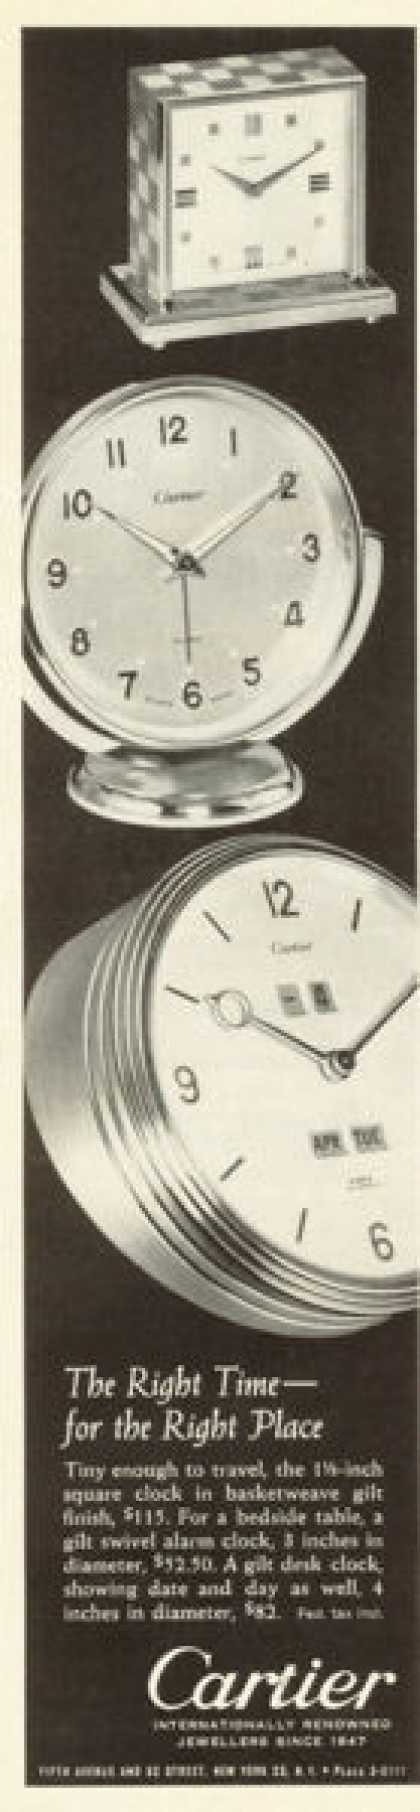 Cartier Round Square Travel Clocks (1961)